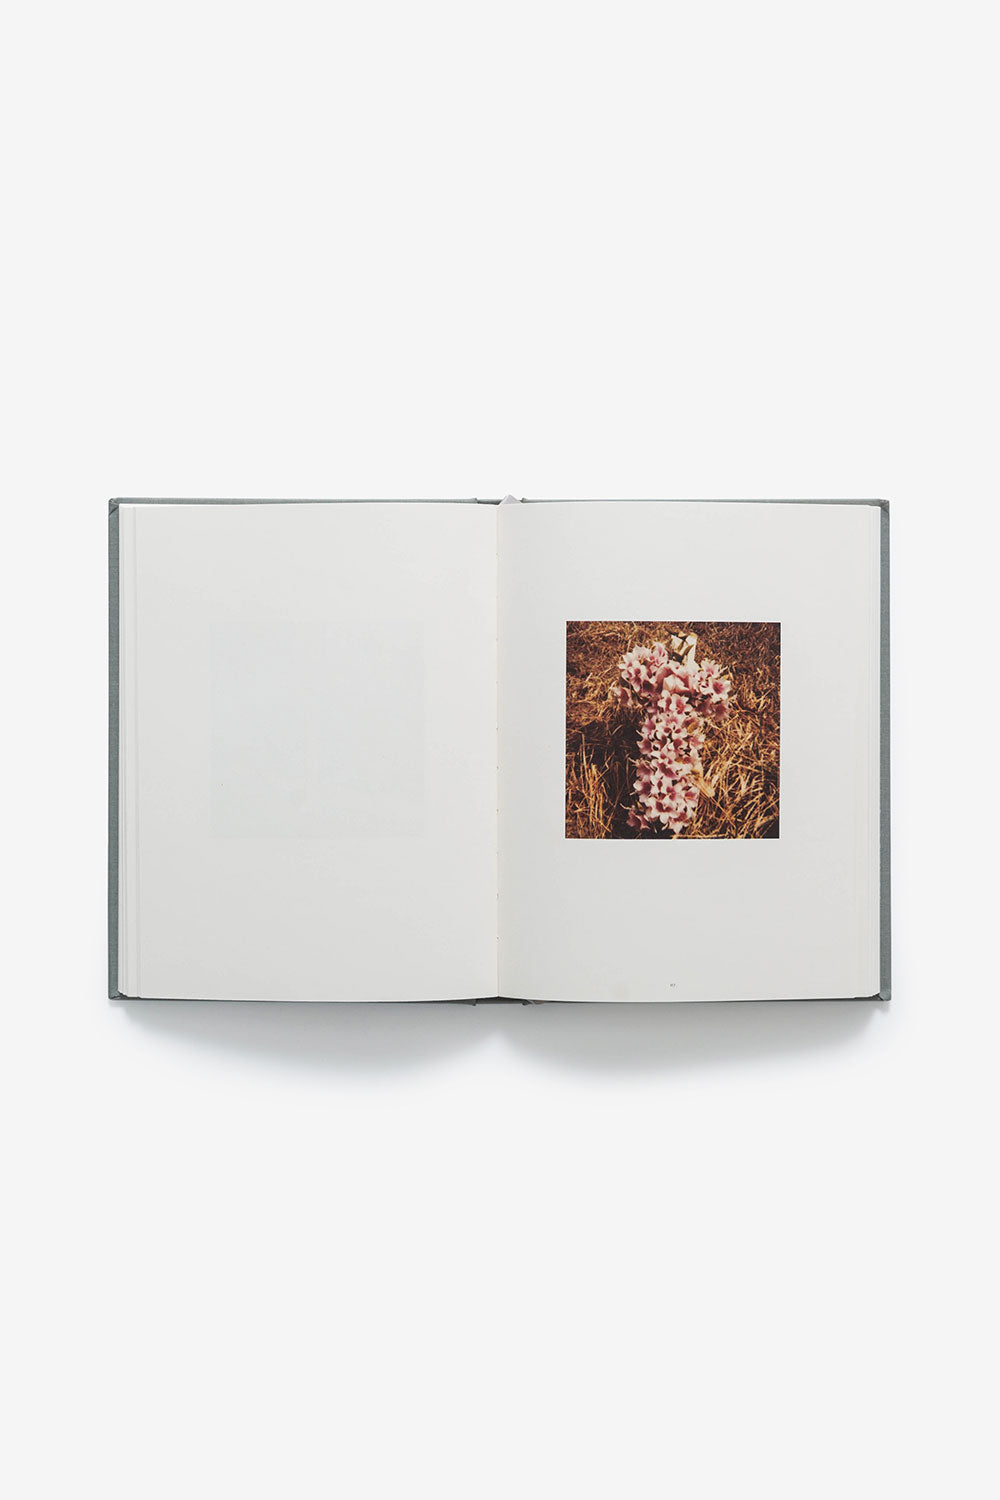 Alabama Chanin Points of Departure Book with Roadside Memorials by Phillip March Jones